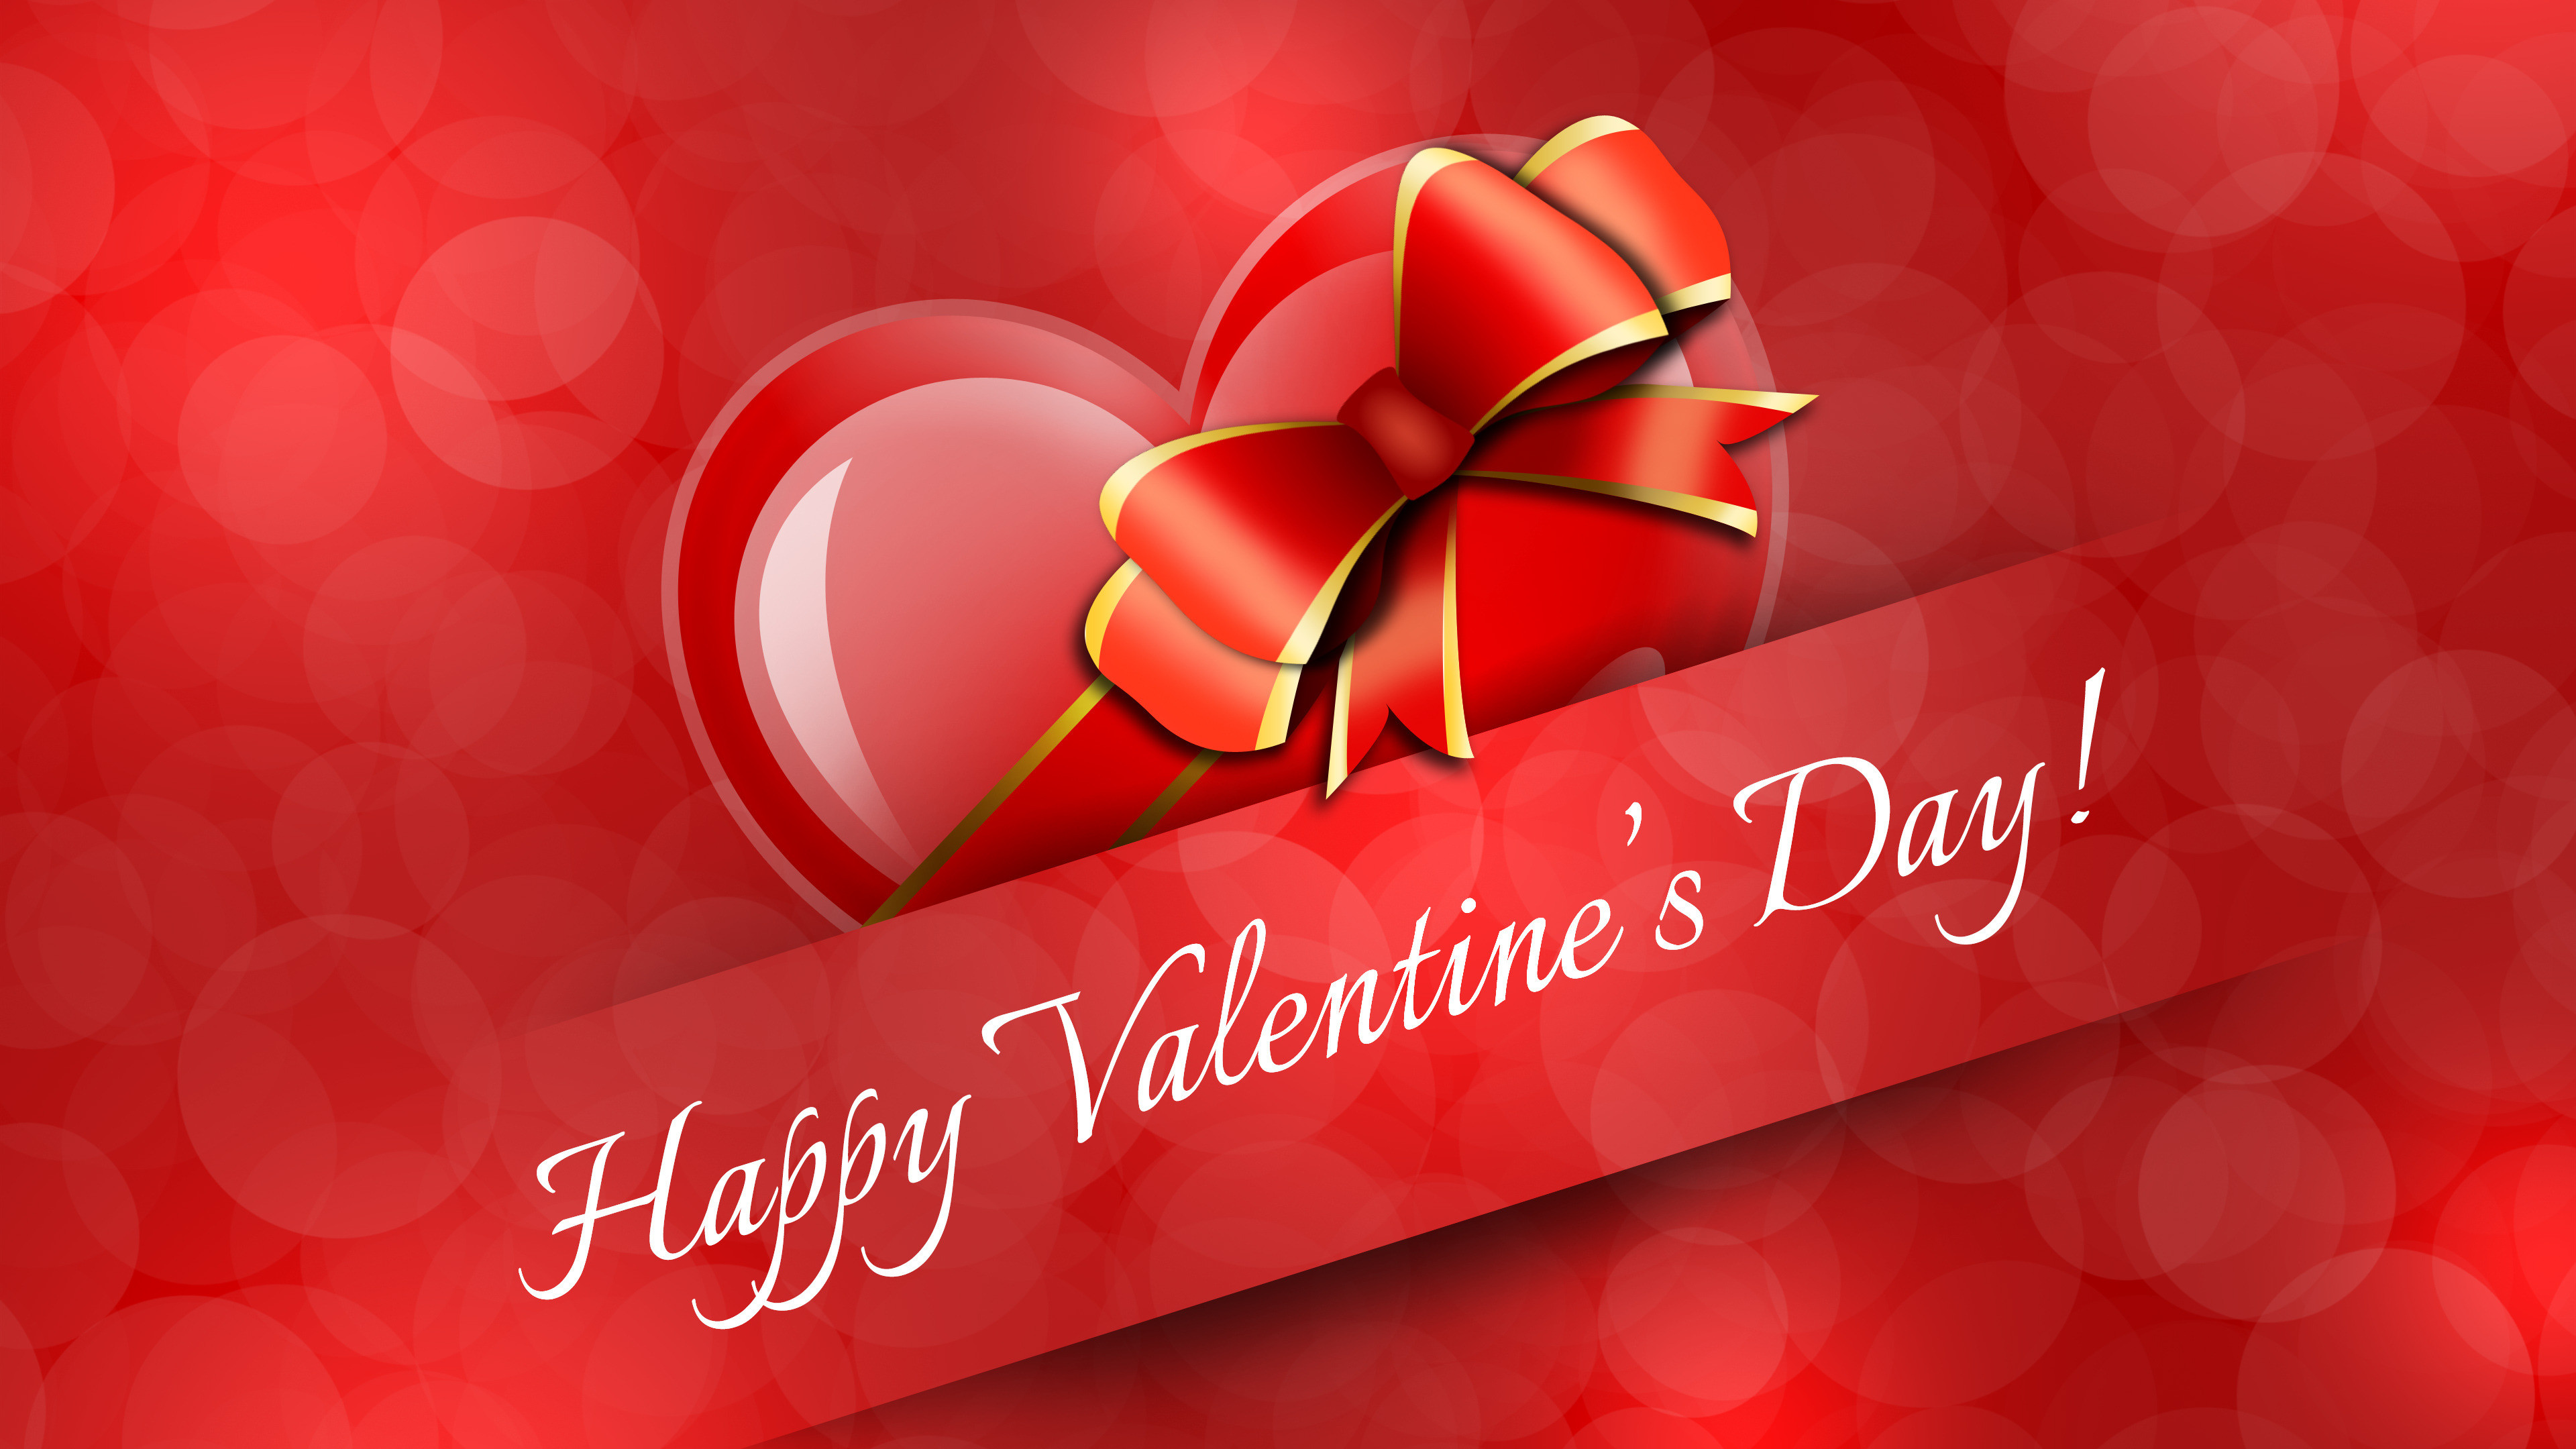 3840x2160 150+ HD Valentine Day Wallpapers for Your GF/BF